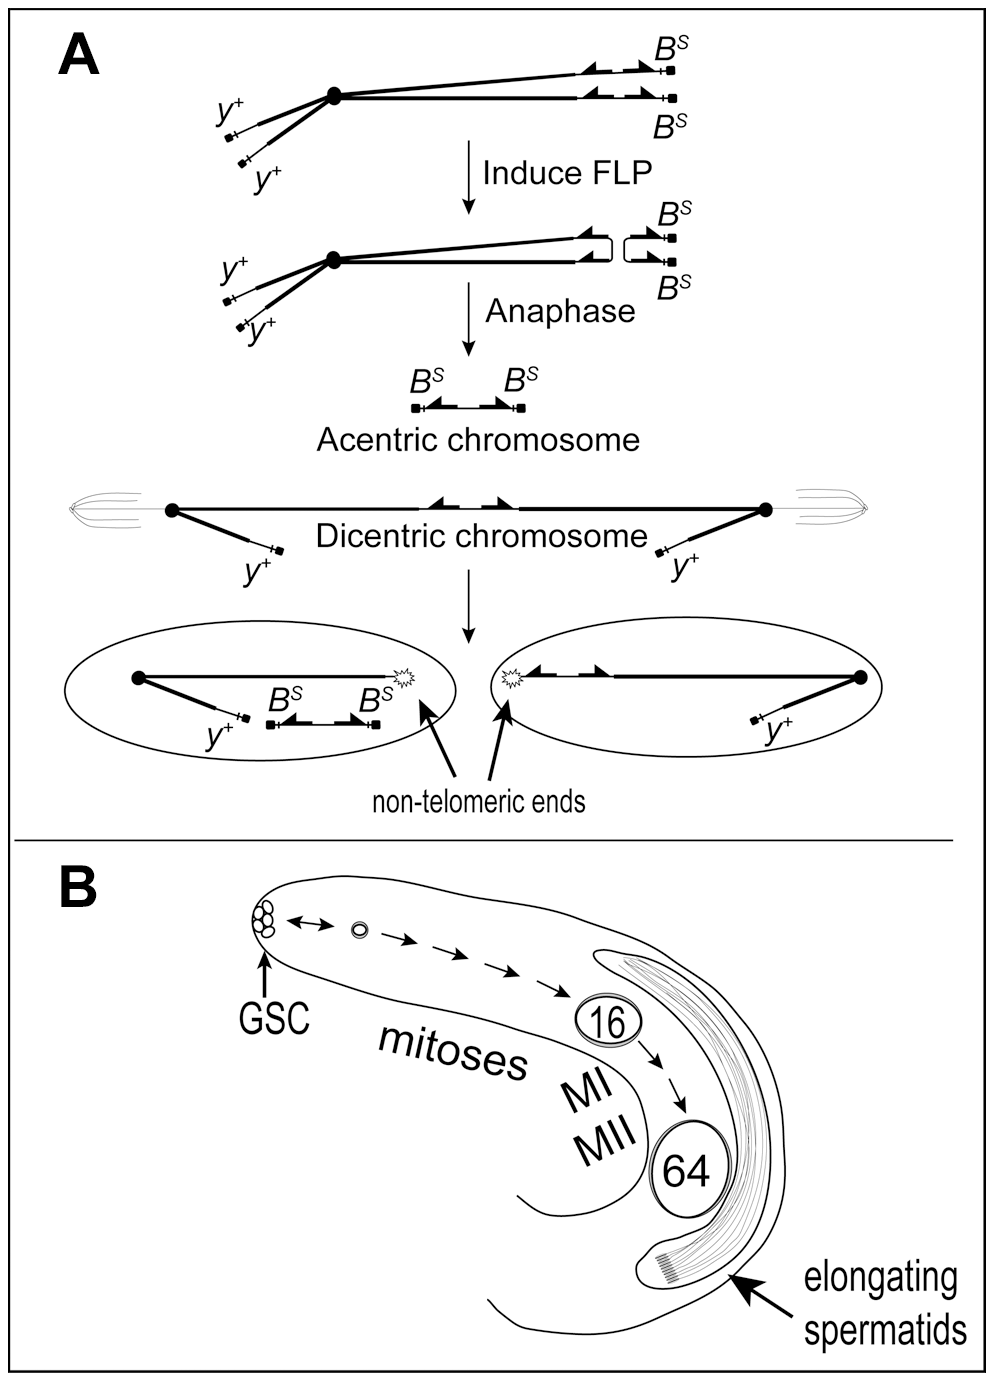 Dicentric chromosome formation and spermatogenesis.